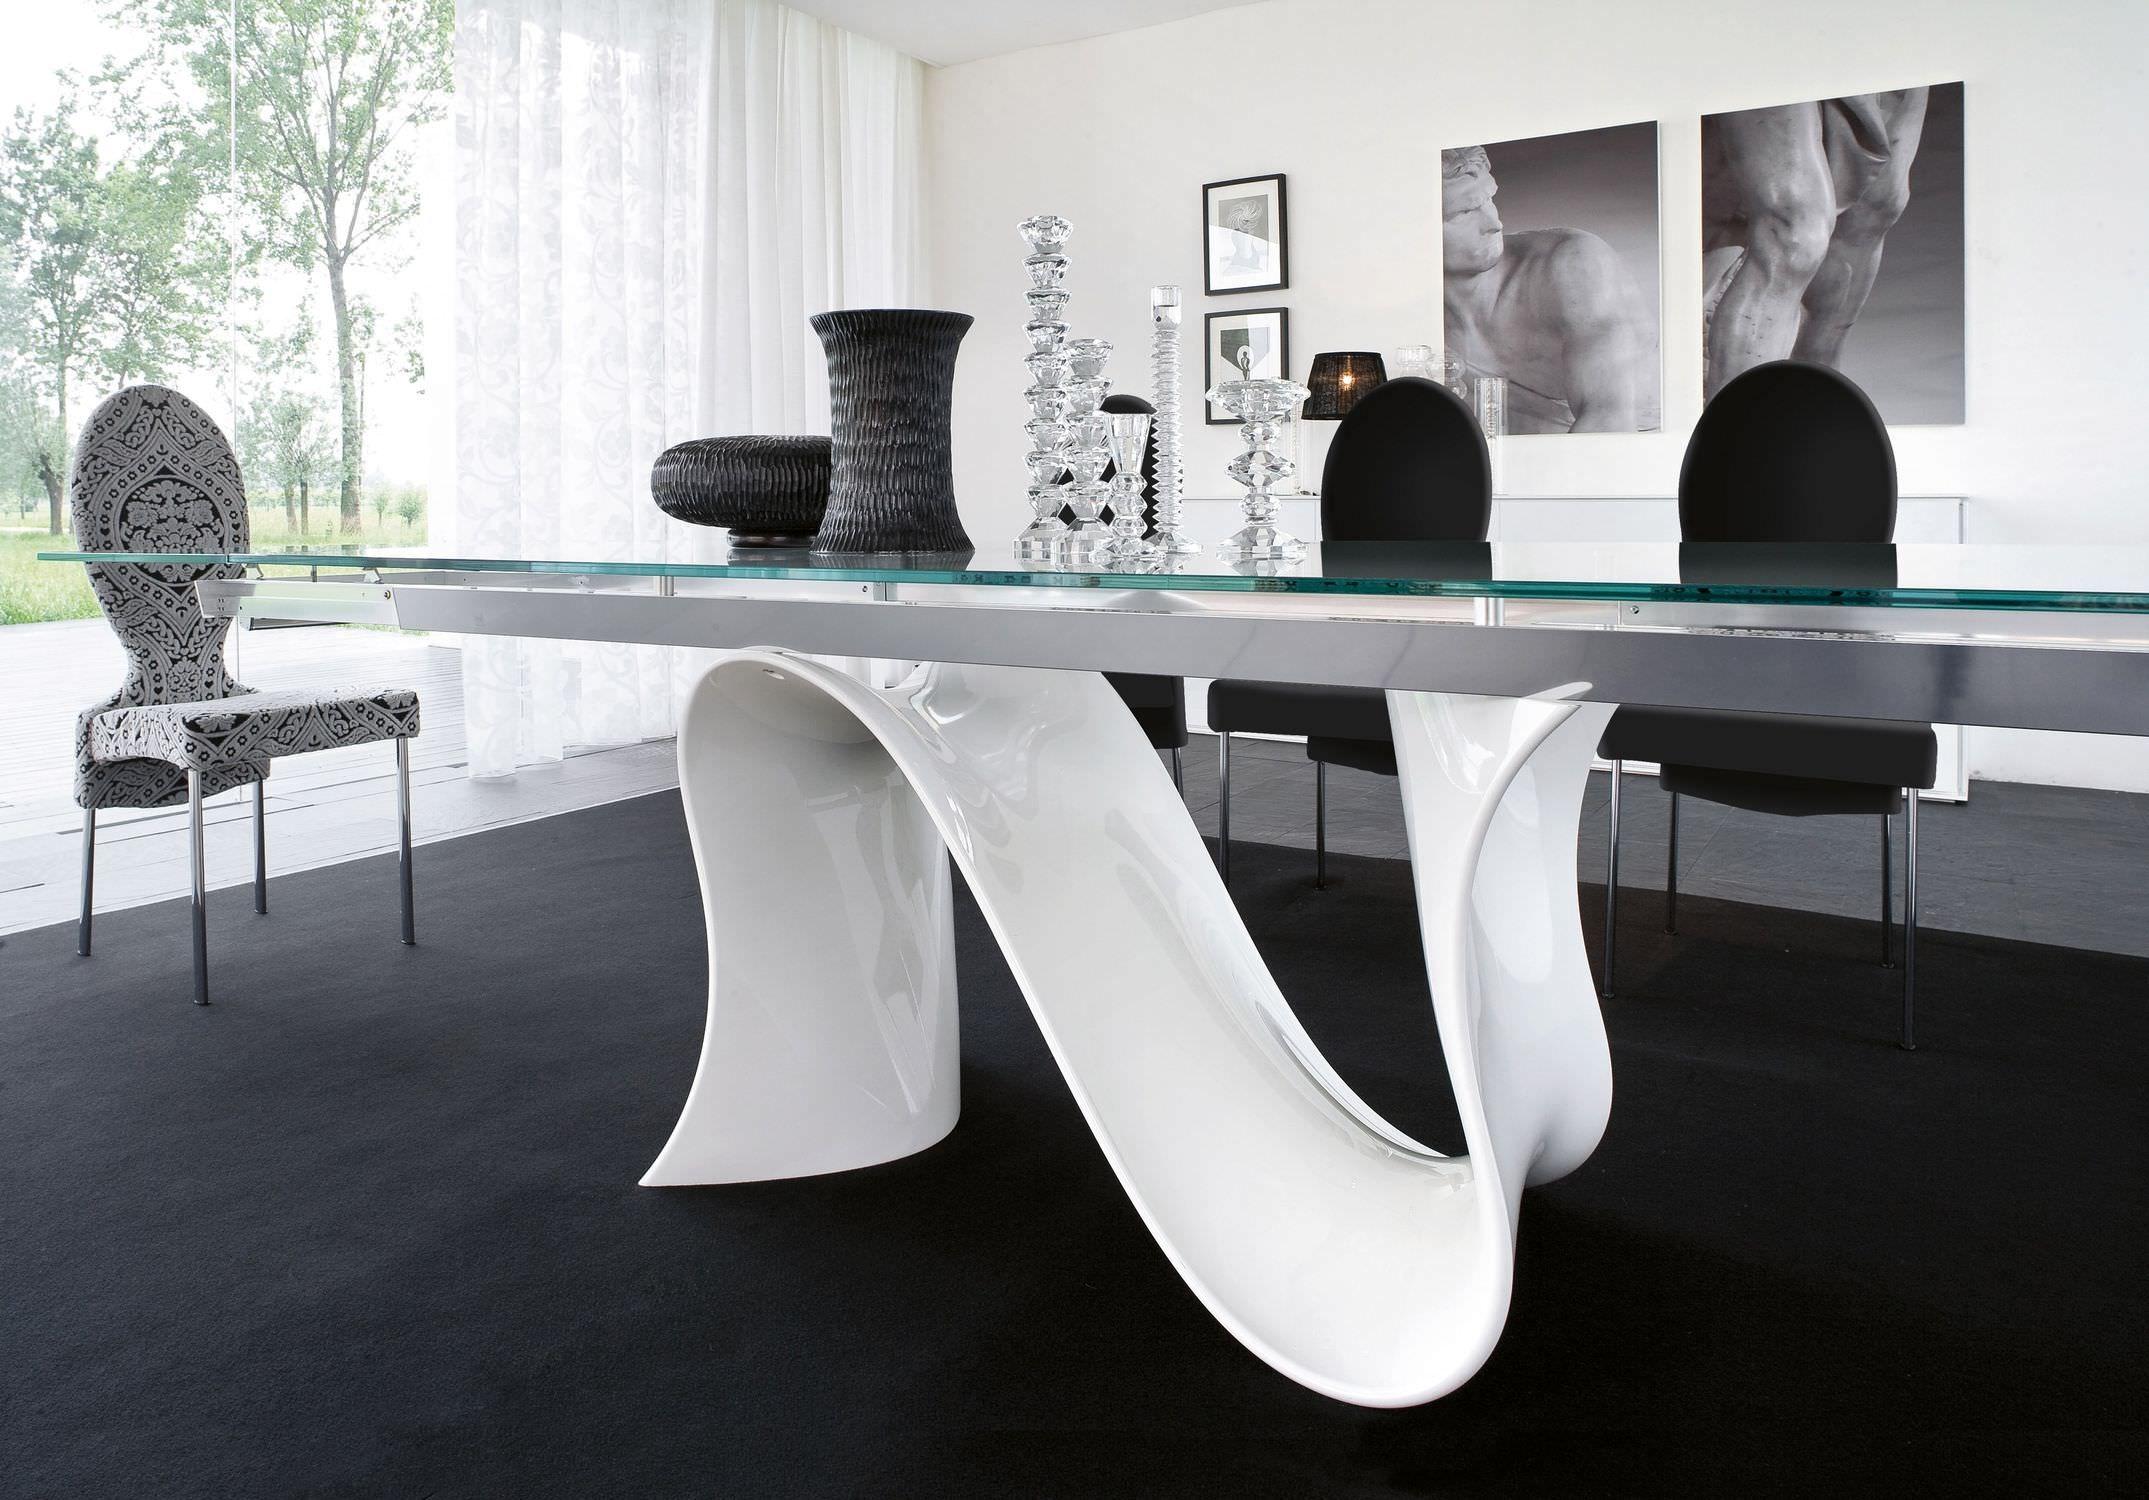 Marvellous Glass Top Dining Table Design Ideas By Long Square Glass Table  With N Curving Shape